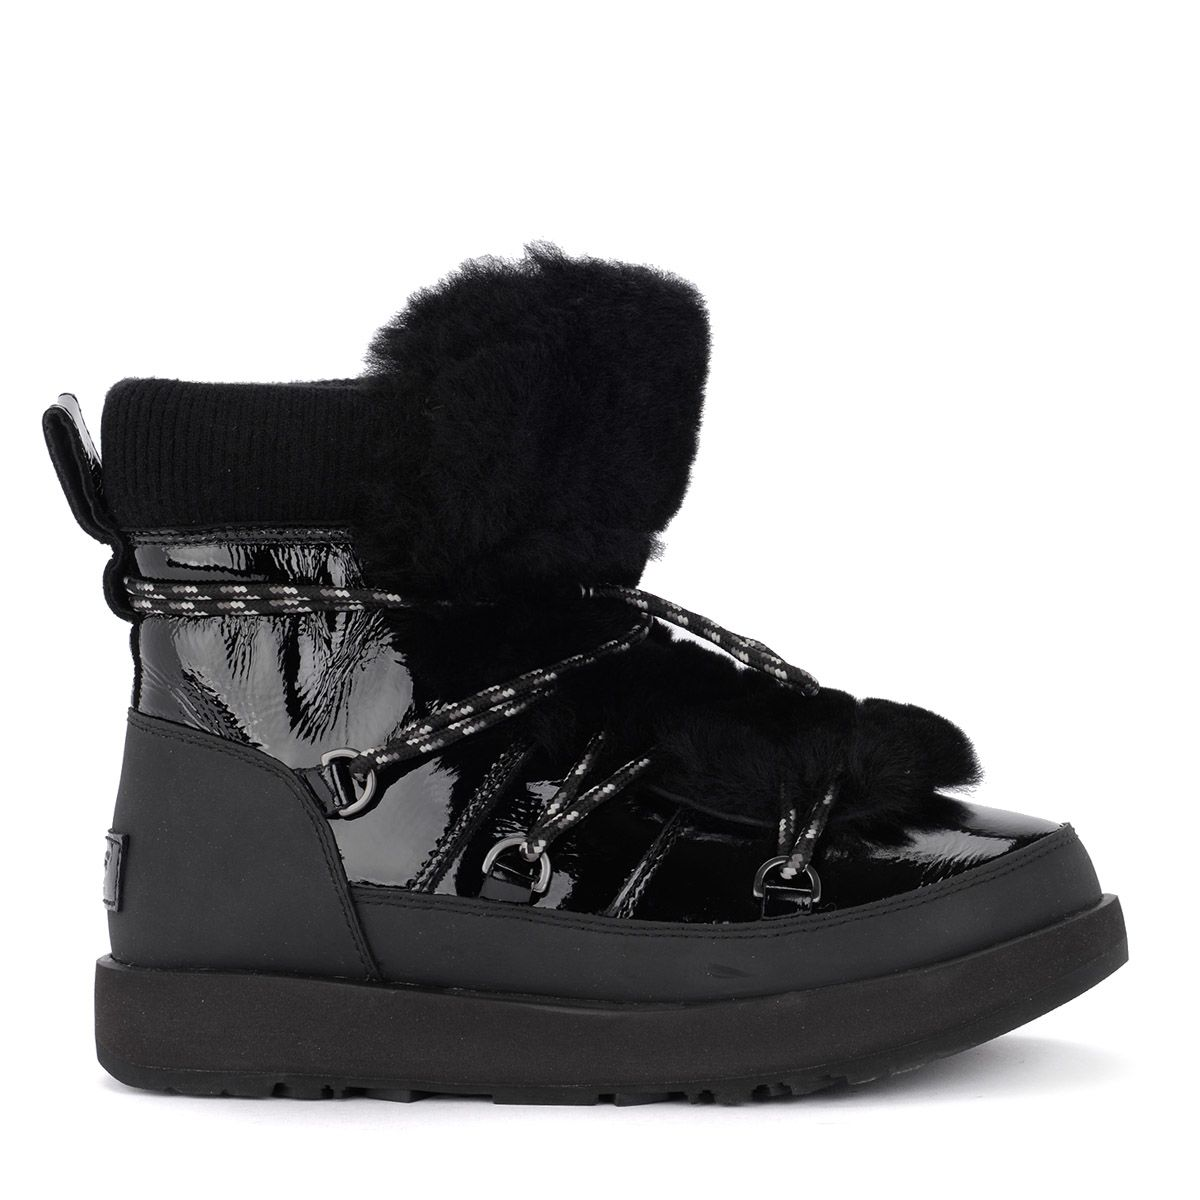 fd5cf7ad8a5 Ugg Black Patent Leather Highland Waterproof Low Boot | ModeSens